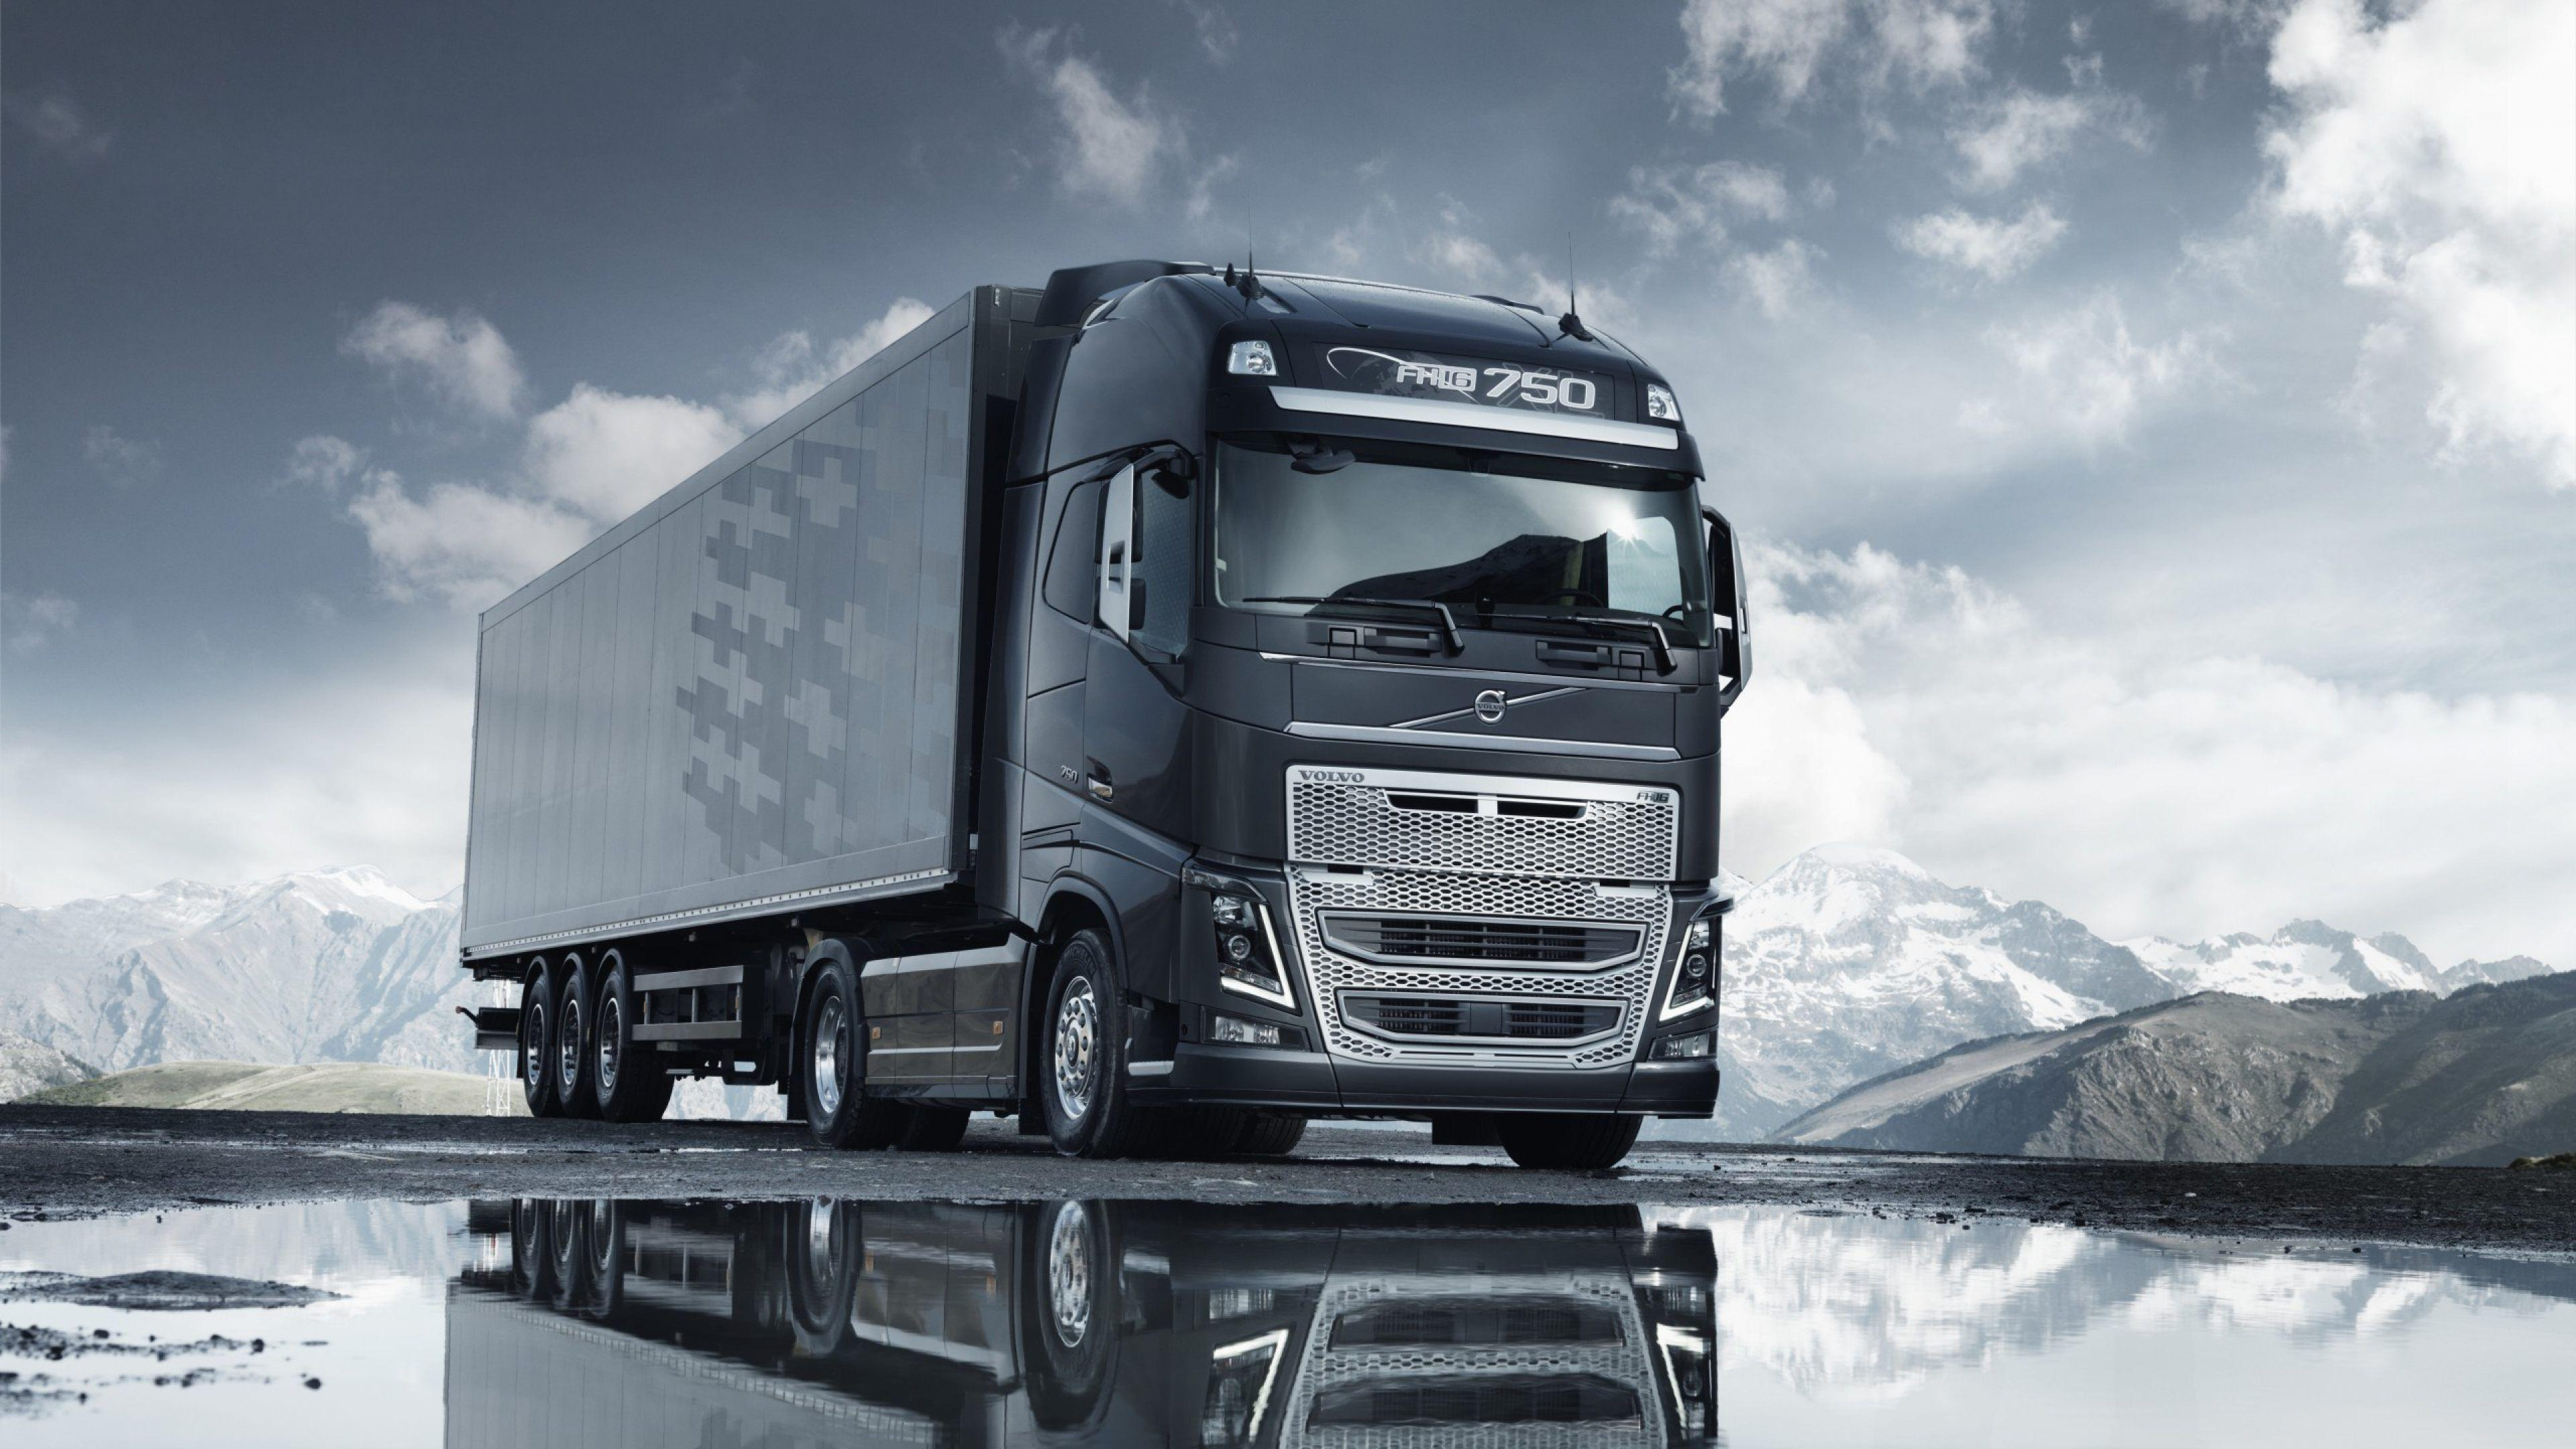 Volvo FH16 750 Truck Wallpapers Download Of 4K Ultra HD